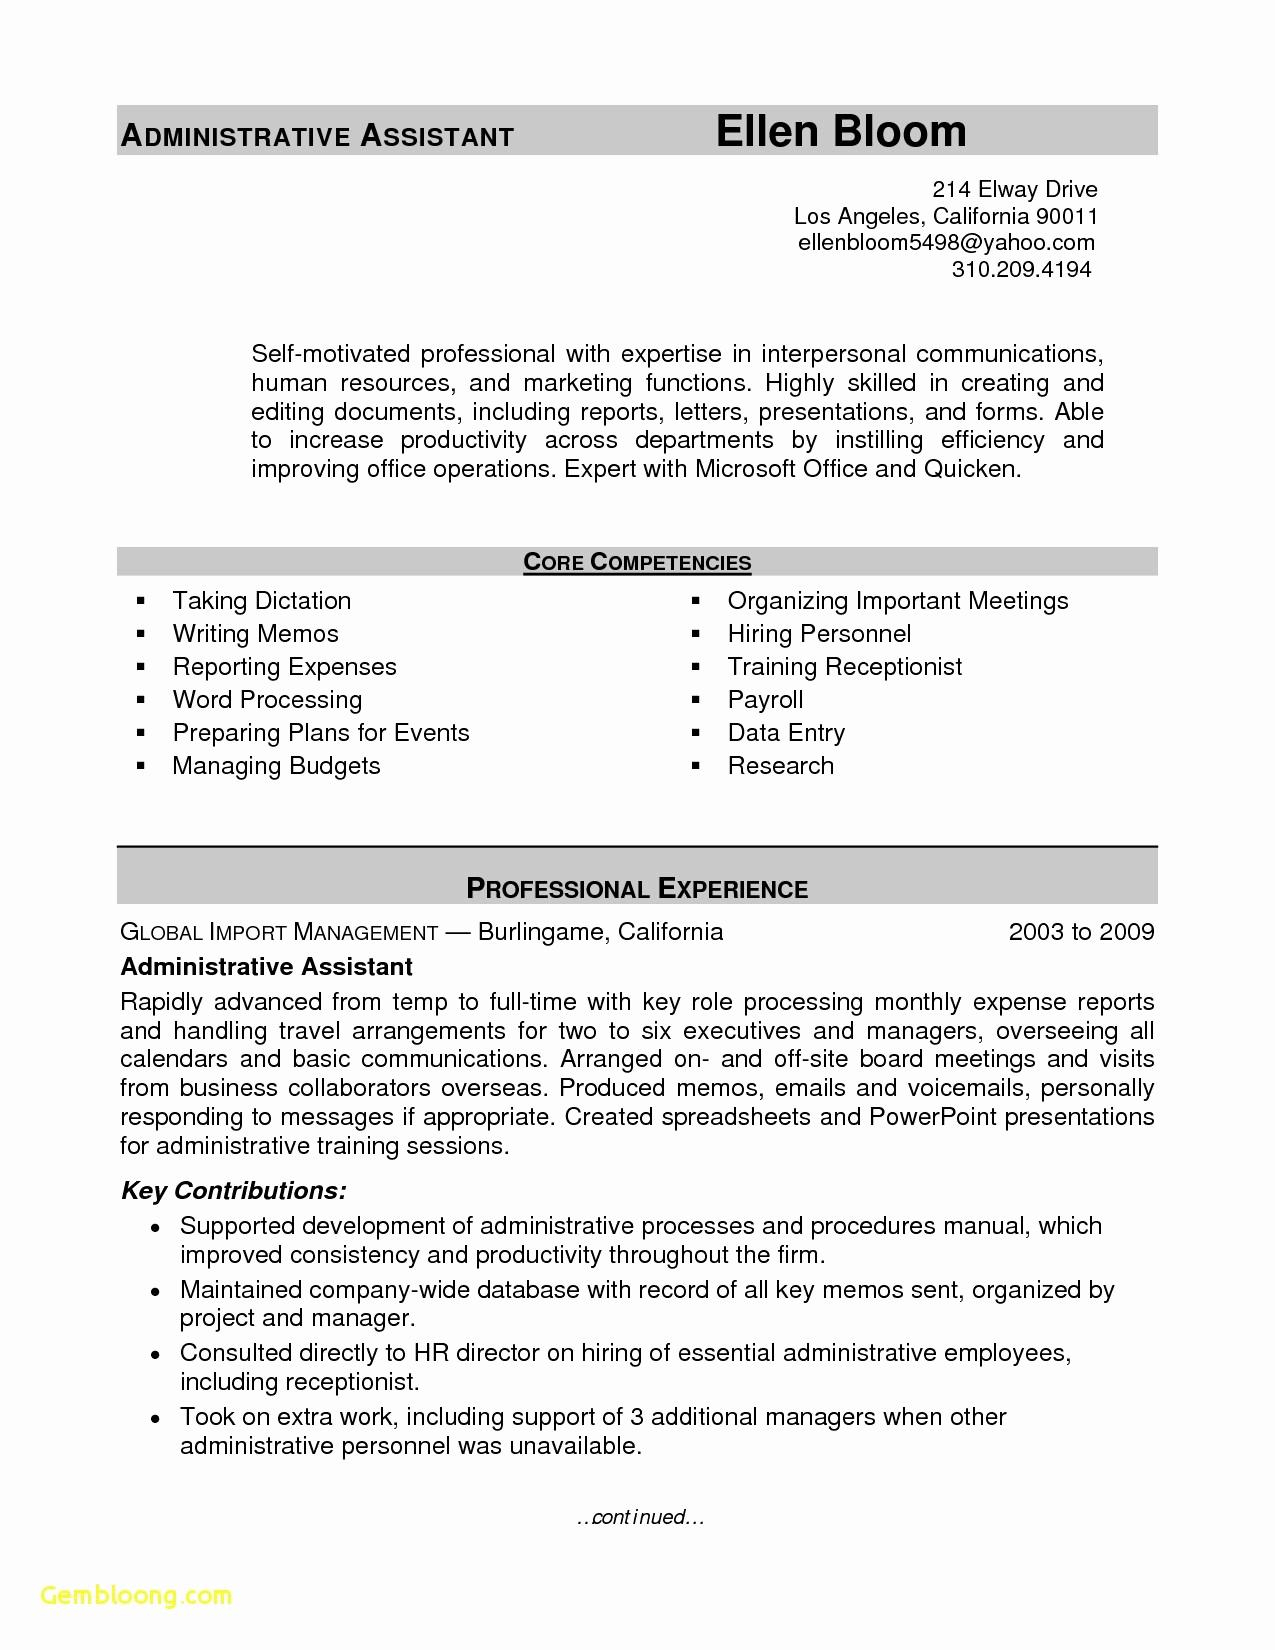 human resources manager resume template example-Resume Sample for Hr Manager Elegant Hr Manager Resume New American Resume Sample New Student Resume 0d 8-k